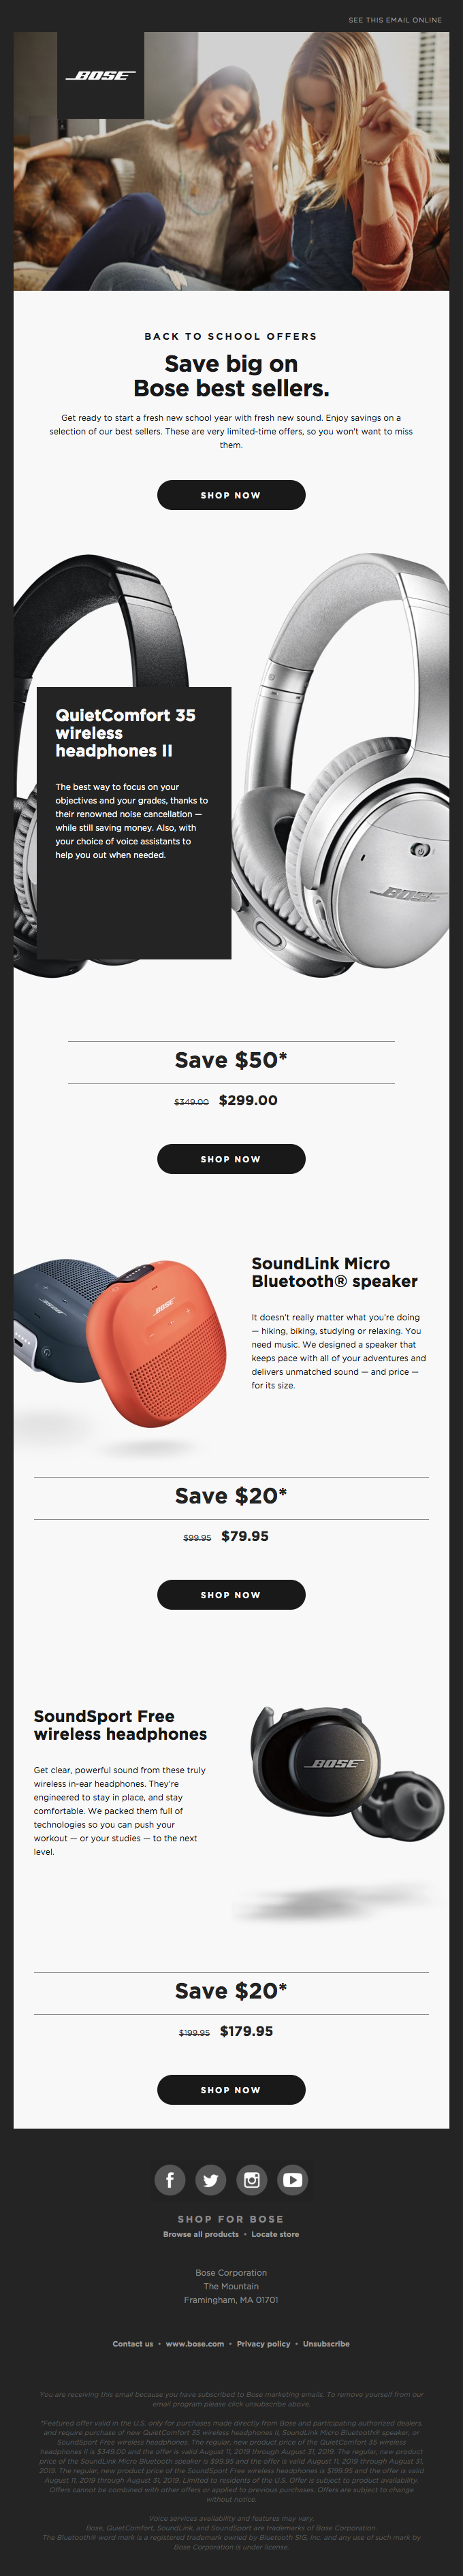 Save big on headphones and speakers for back to school season